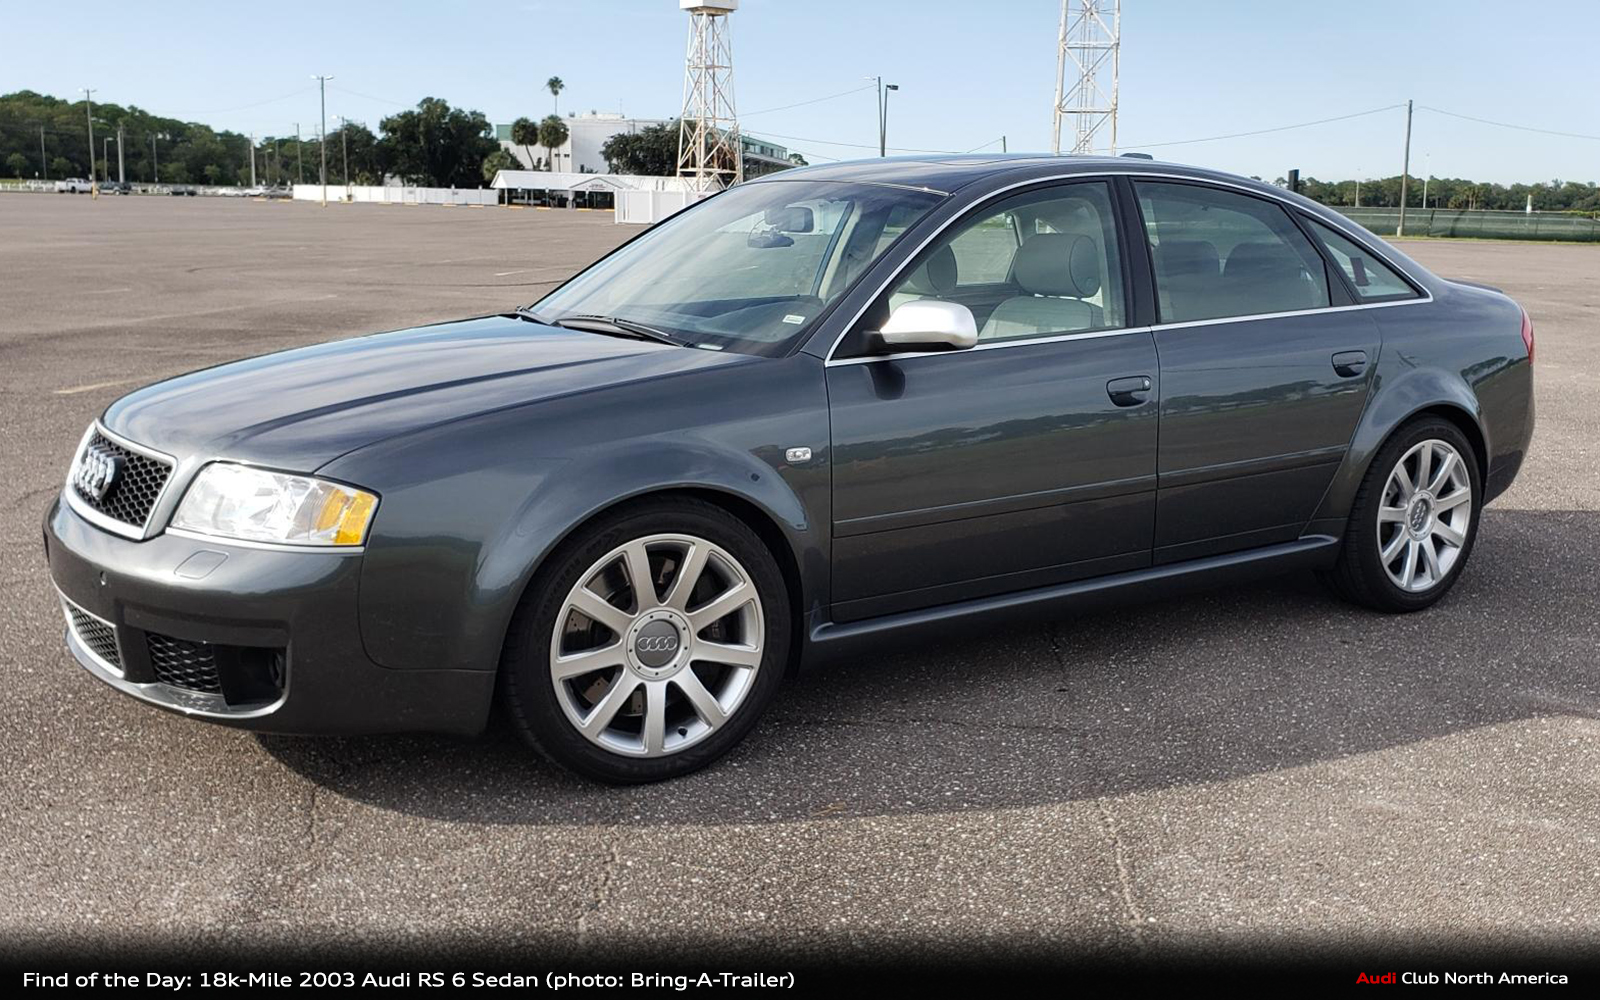 Find of the Day: 18k-Mile 2003 Audi RS 6 Sedan